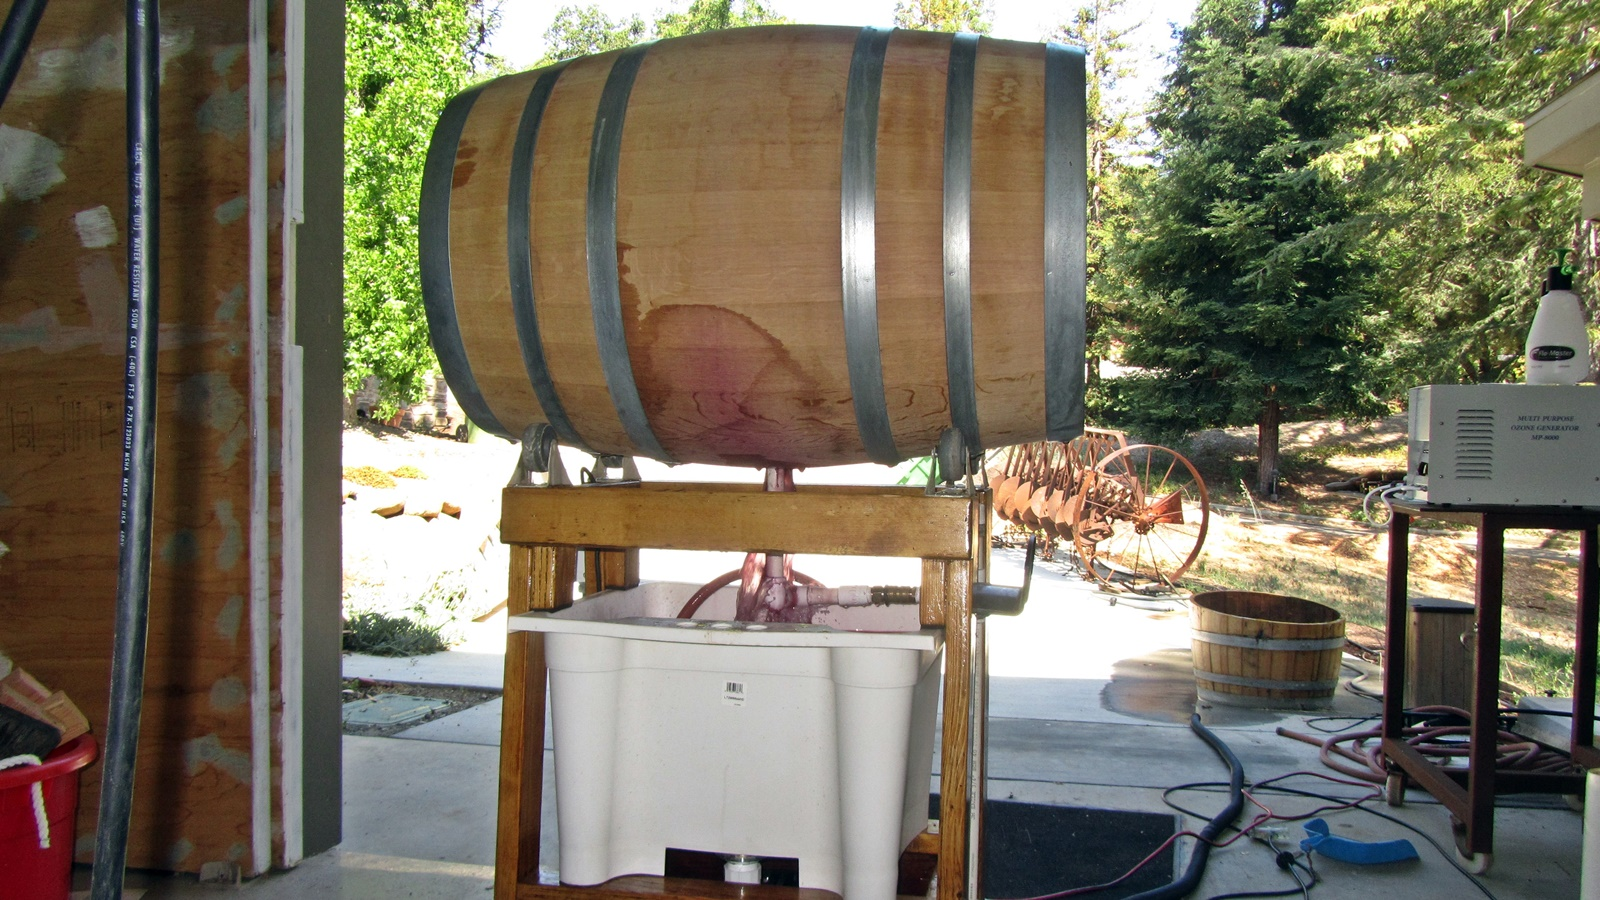 2 Cleaninng barrel on barrel washer